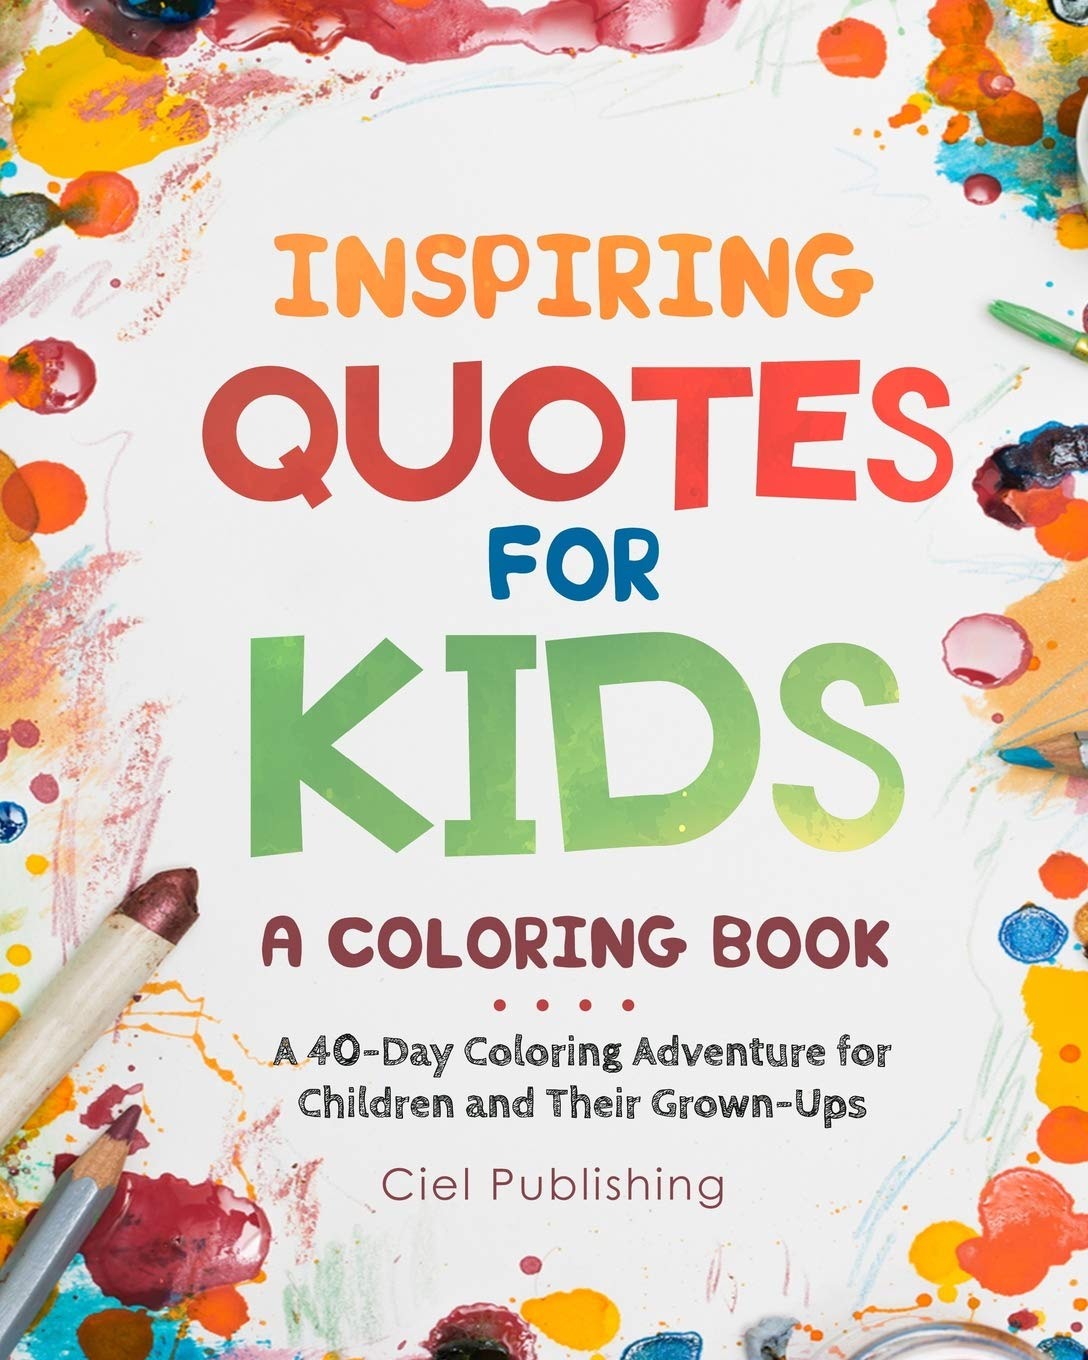 Inspiring Quotes For Kids A Coloring Book A 40 Day Coloring Adventure For Happy Children And Their Grown Ups Amazon Co Uk Publishing Ciel Books